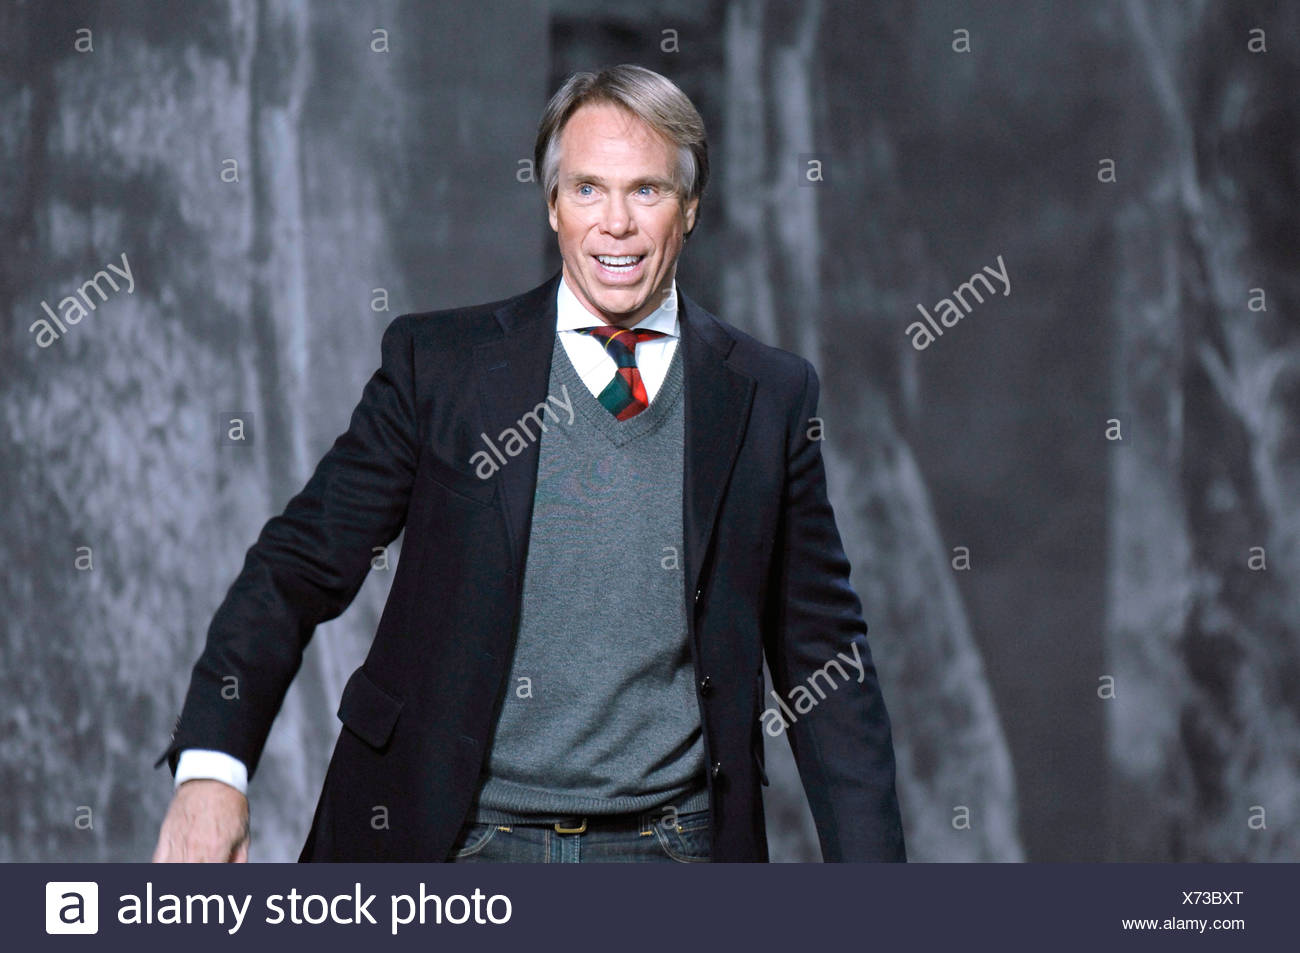 a70d4a42 Tommy Hilfiger New York Ready to Wear Autumn Winter Designer Tommy Hilfiger  wearing shirt and tie and grey v neck jumper under